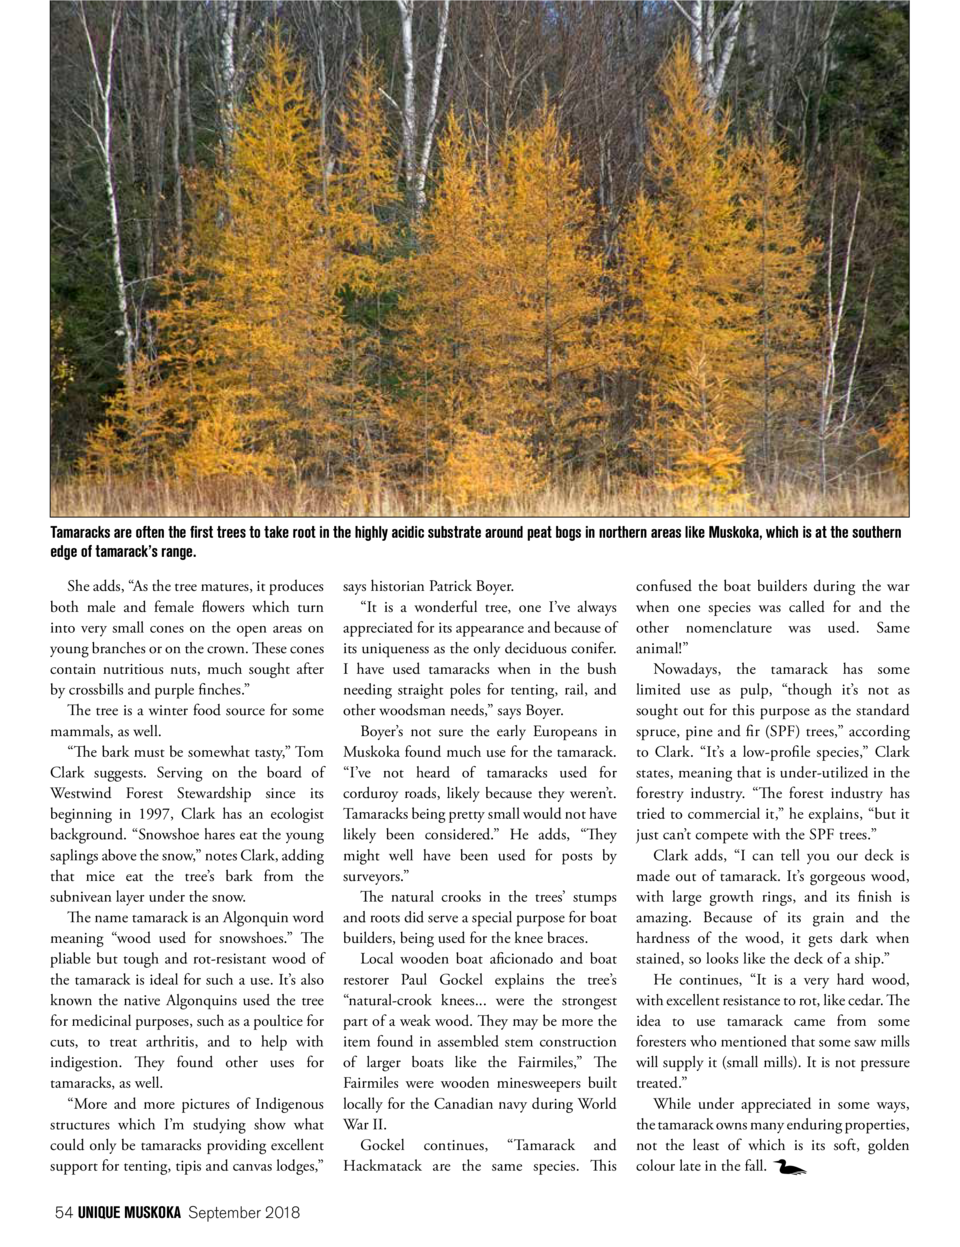 Tamaracks are often the first trees to take root in the highly acidic substrate around peat bogs in northern areas like Mu...